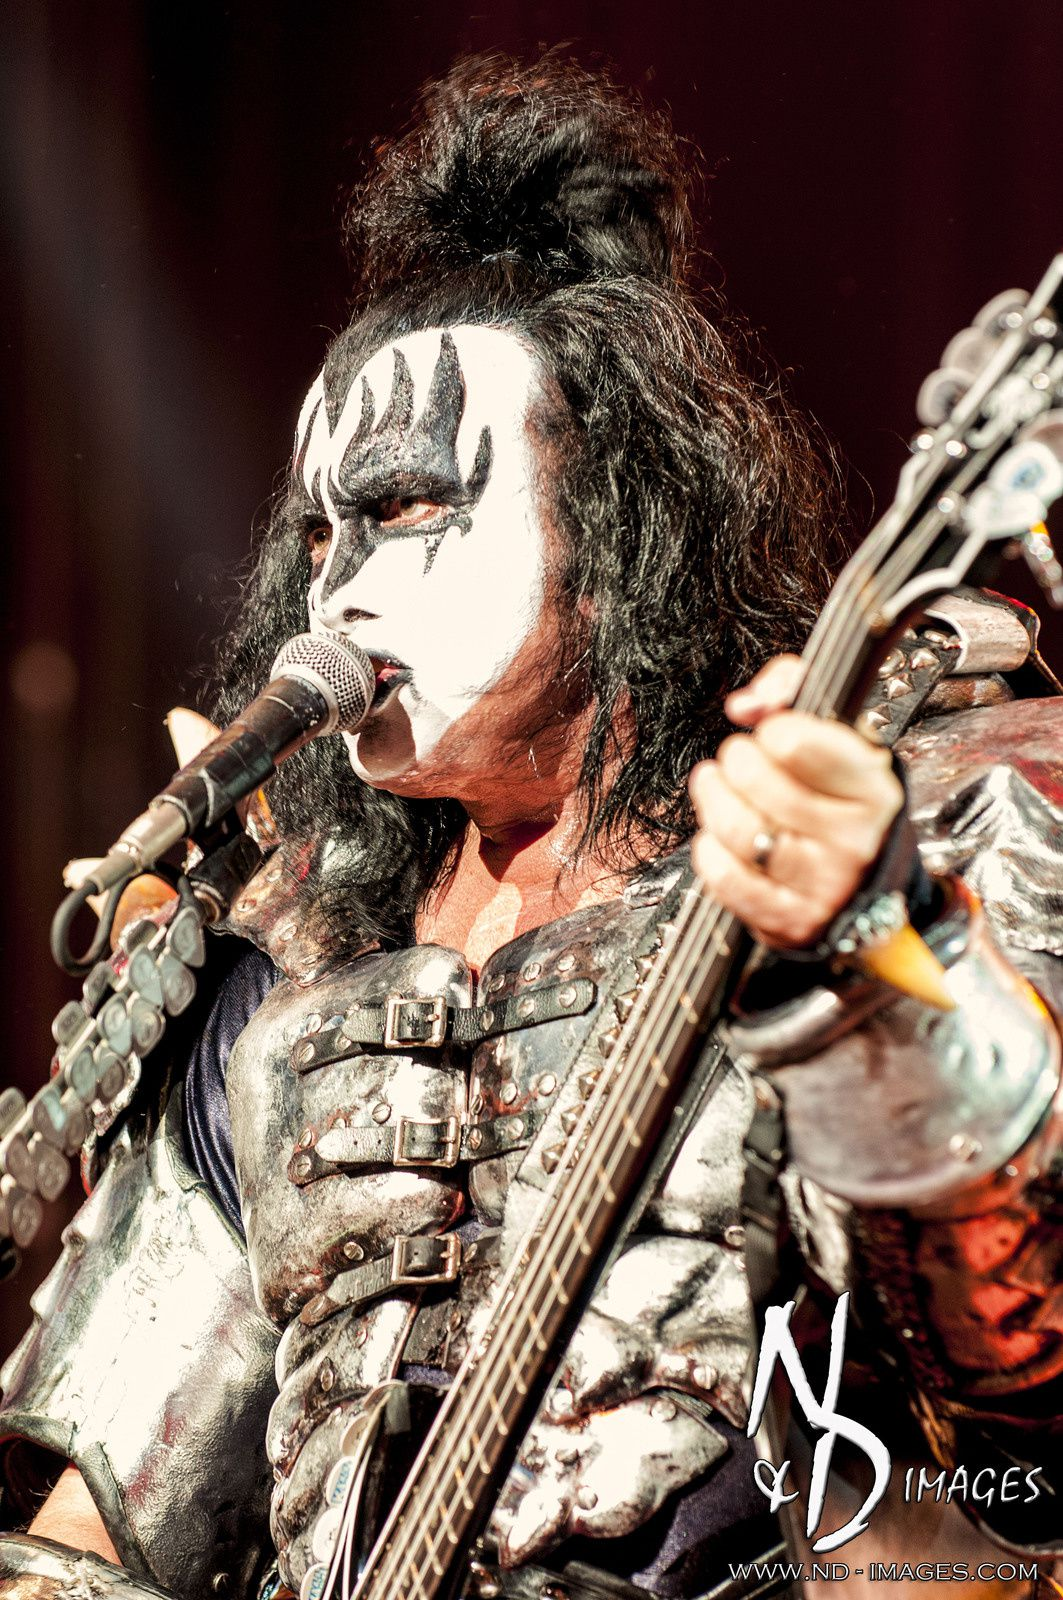 Gene Simmons - KISS Sep 16, 2012 at Comcast Center, Mansfield, MA (USA) - credit: N&D Images